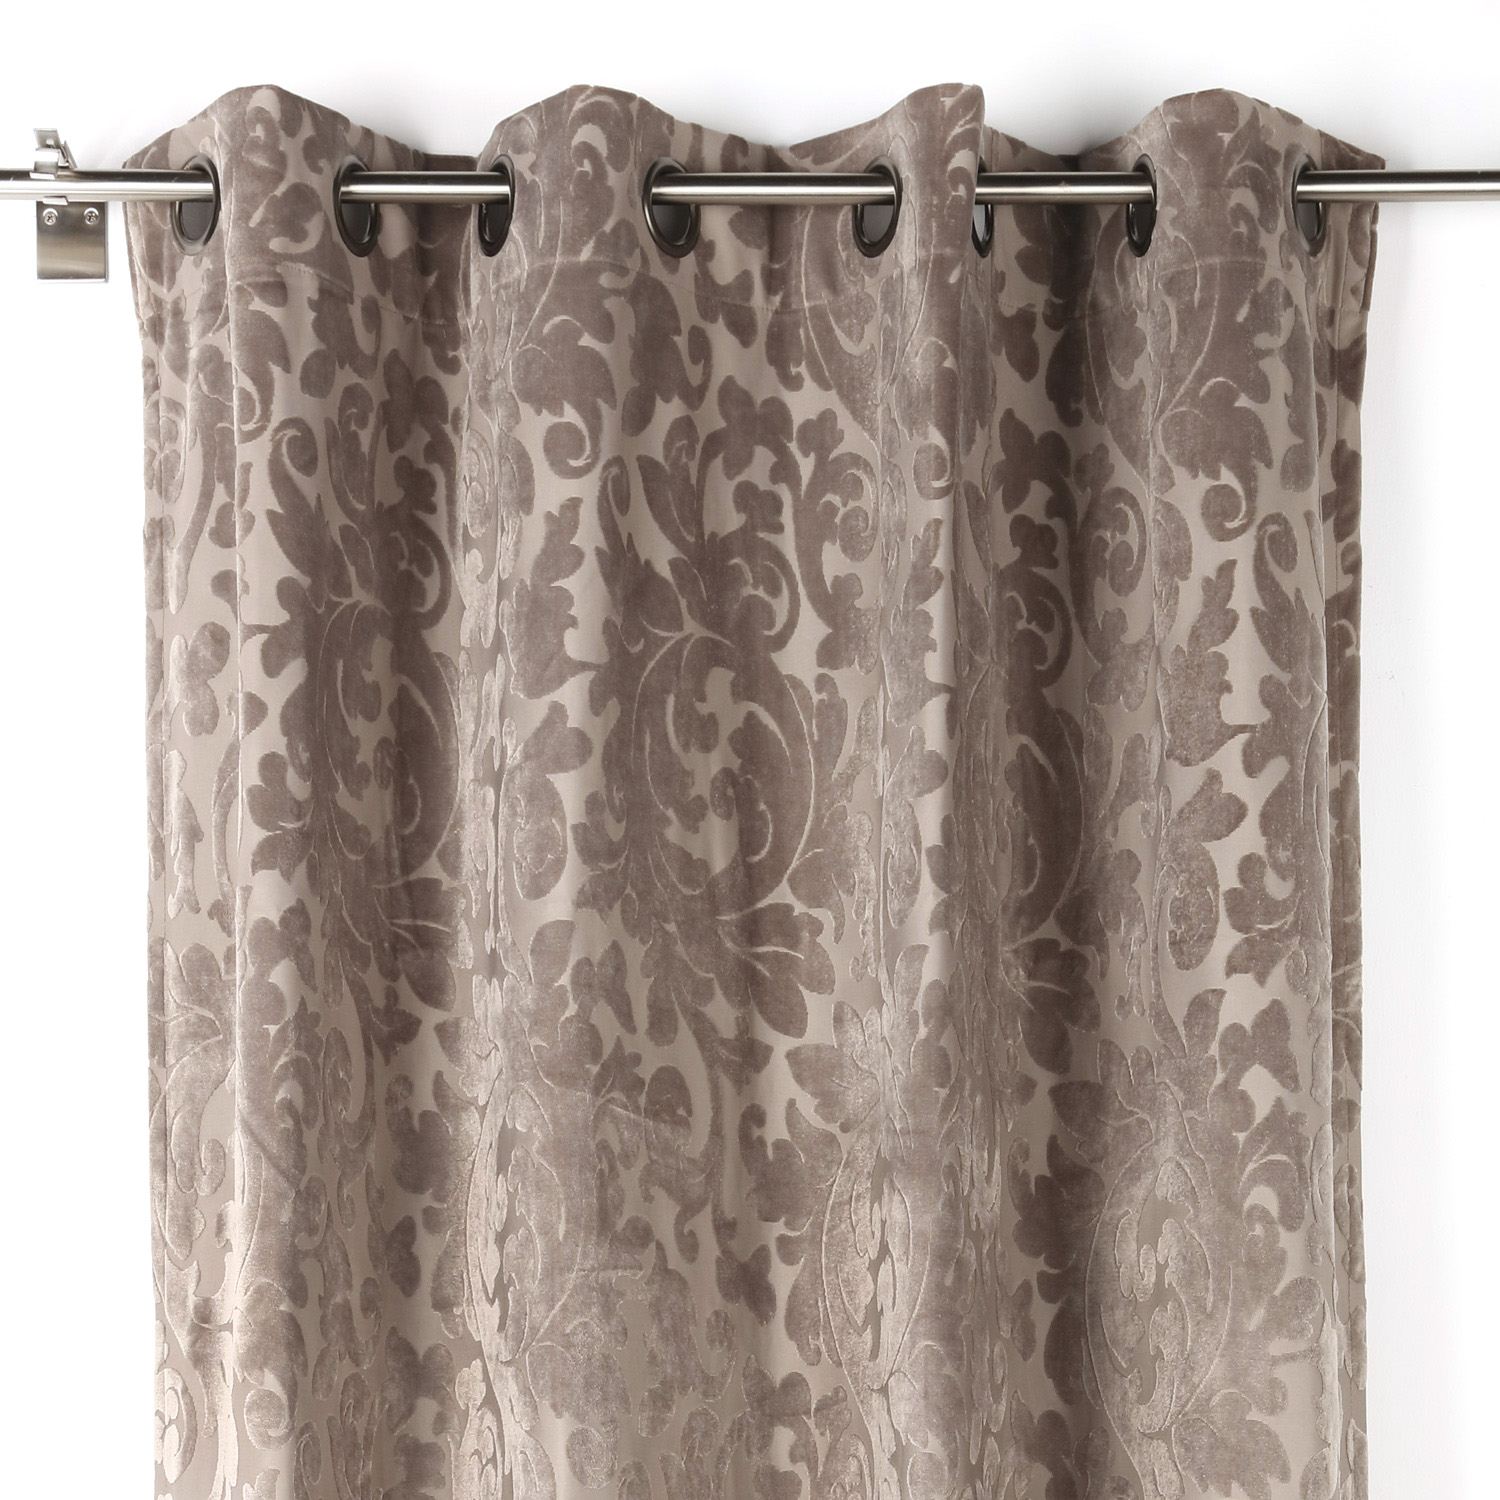 Cortina capuleto 02 140 x 270 cm rioma shop for Cortinas de salon 2015